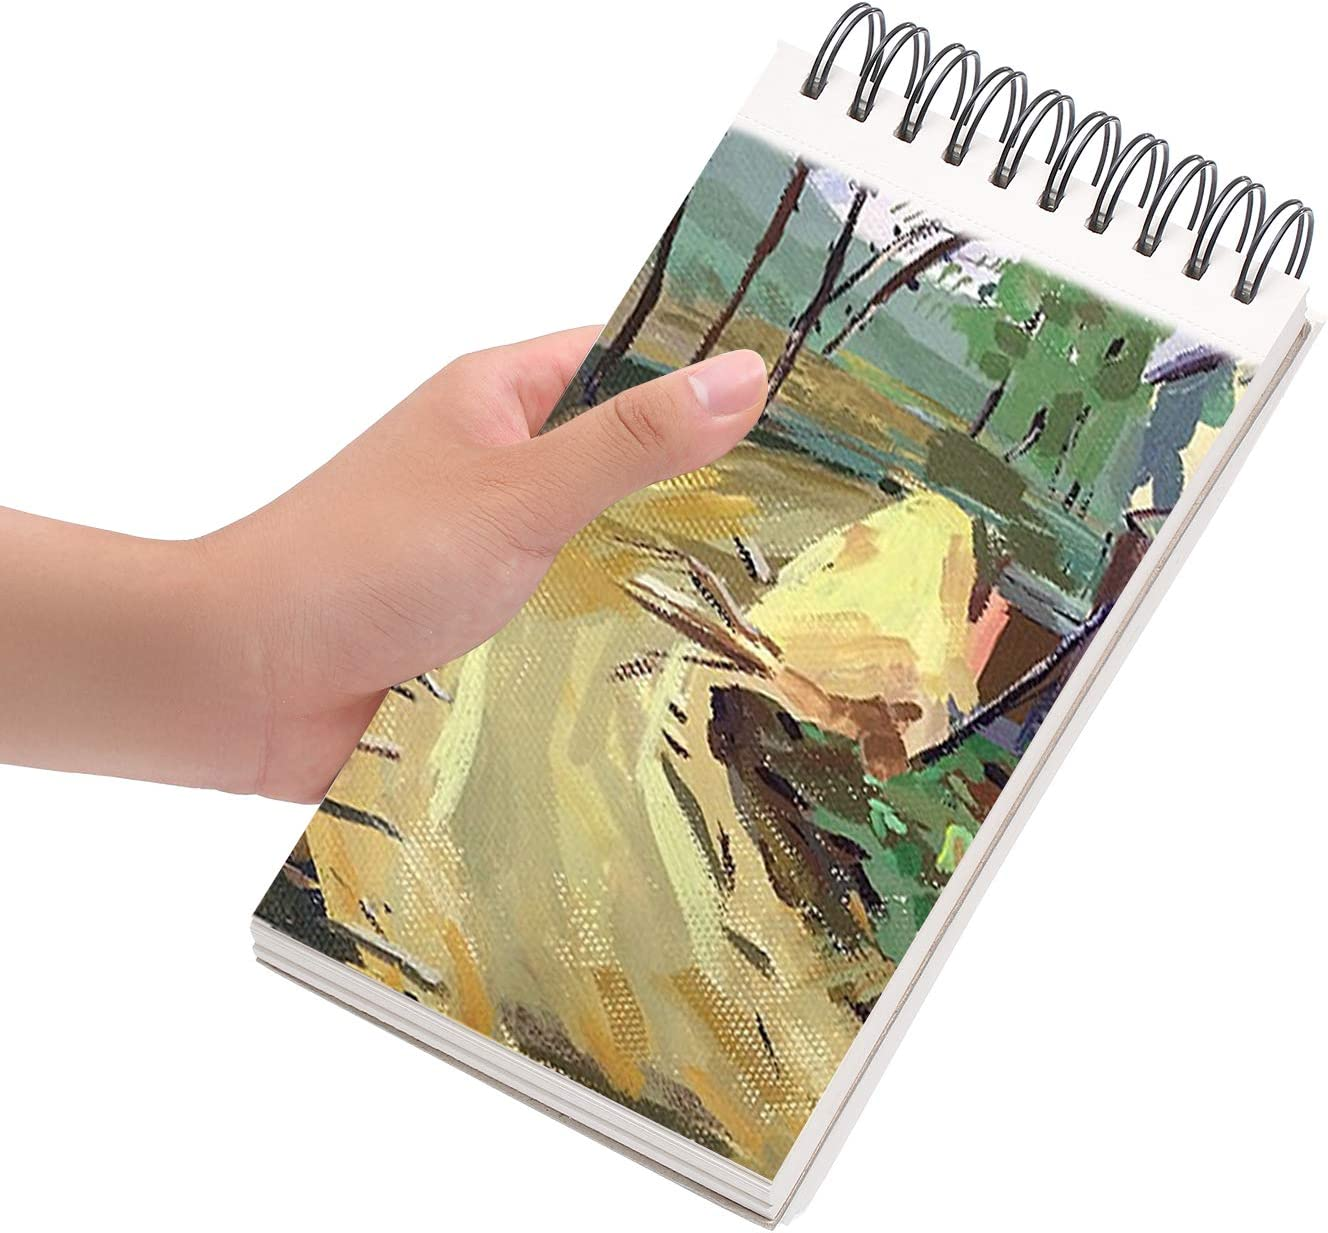 Marker Art Colored Pencil 100 Sheets of Spiral Bound Sketch Book for Artist Pro /& Amateurs Charcoal for Sketching Bachmore Sketchpad 8.5X5.5 Inch 68lb//100g